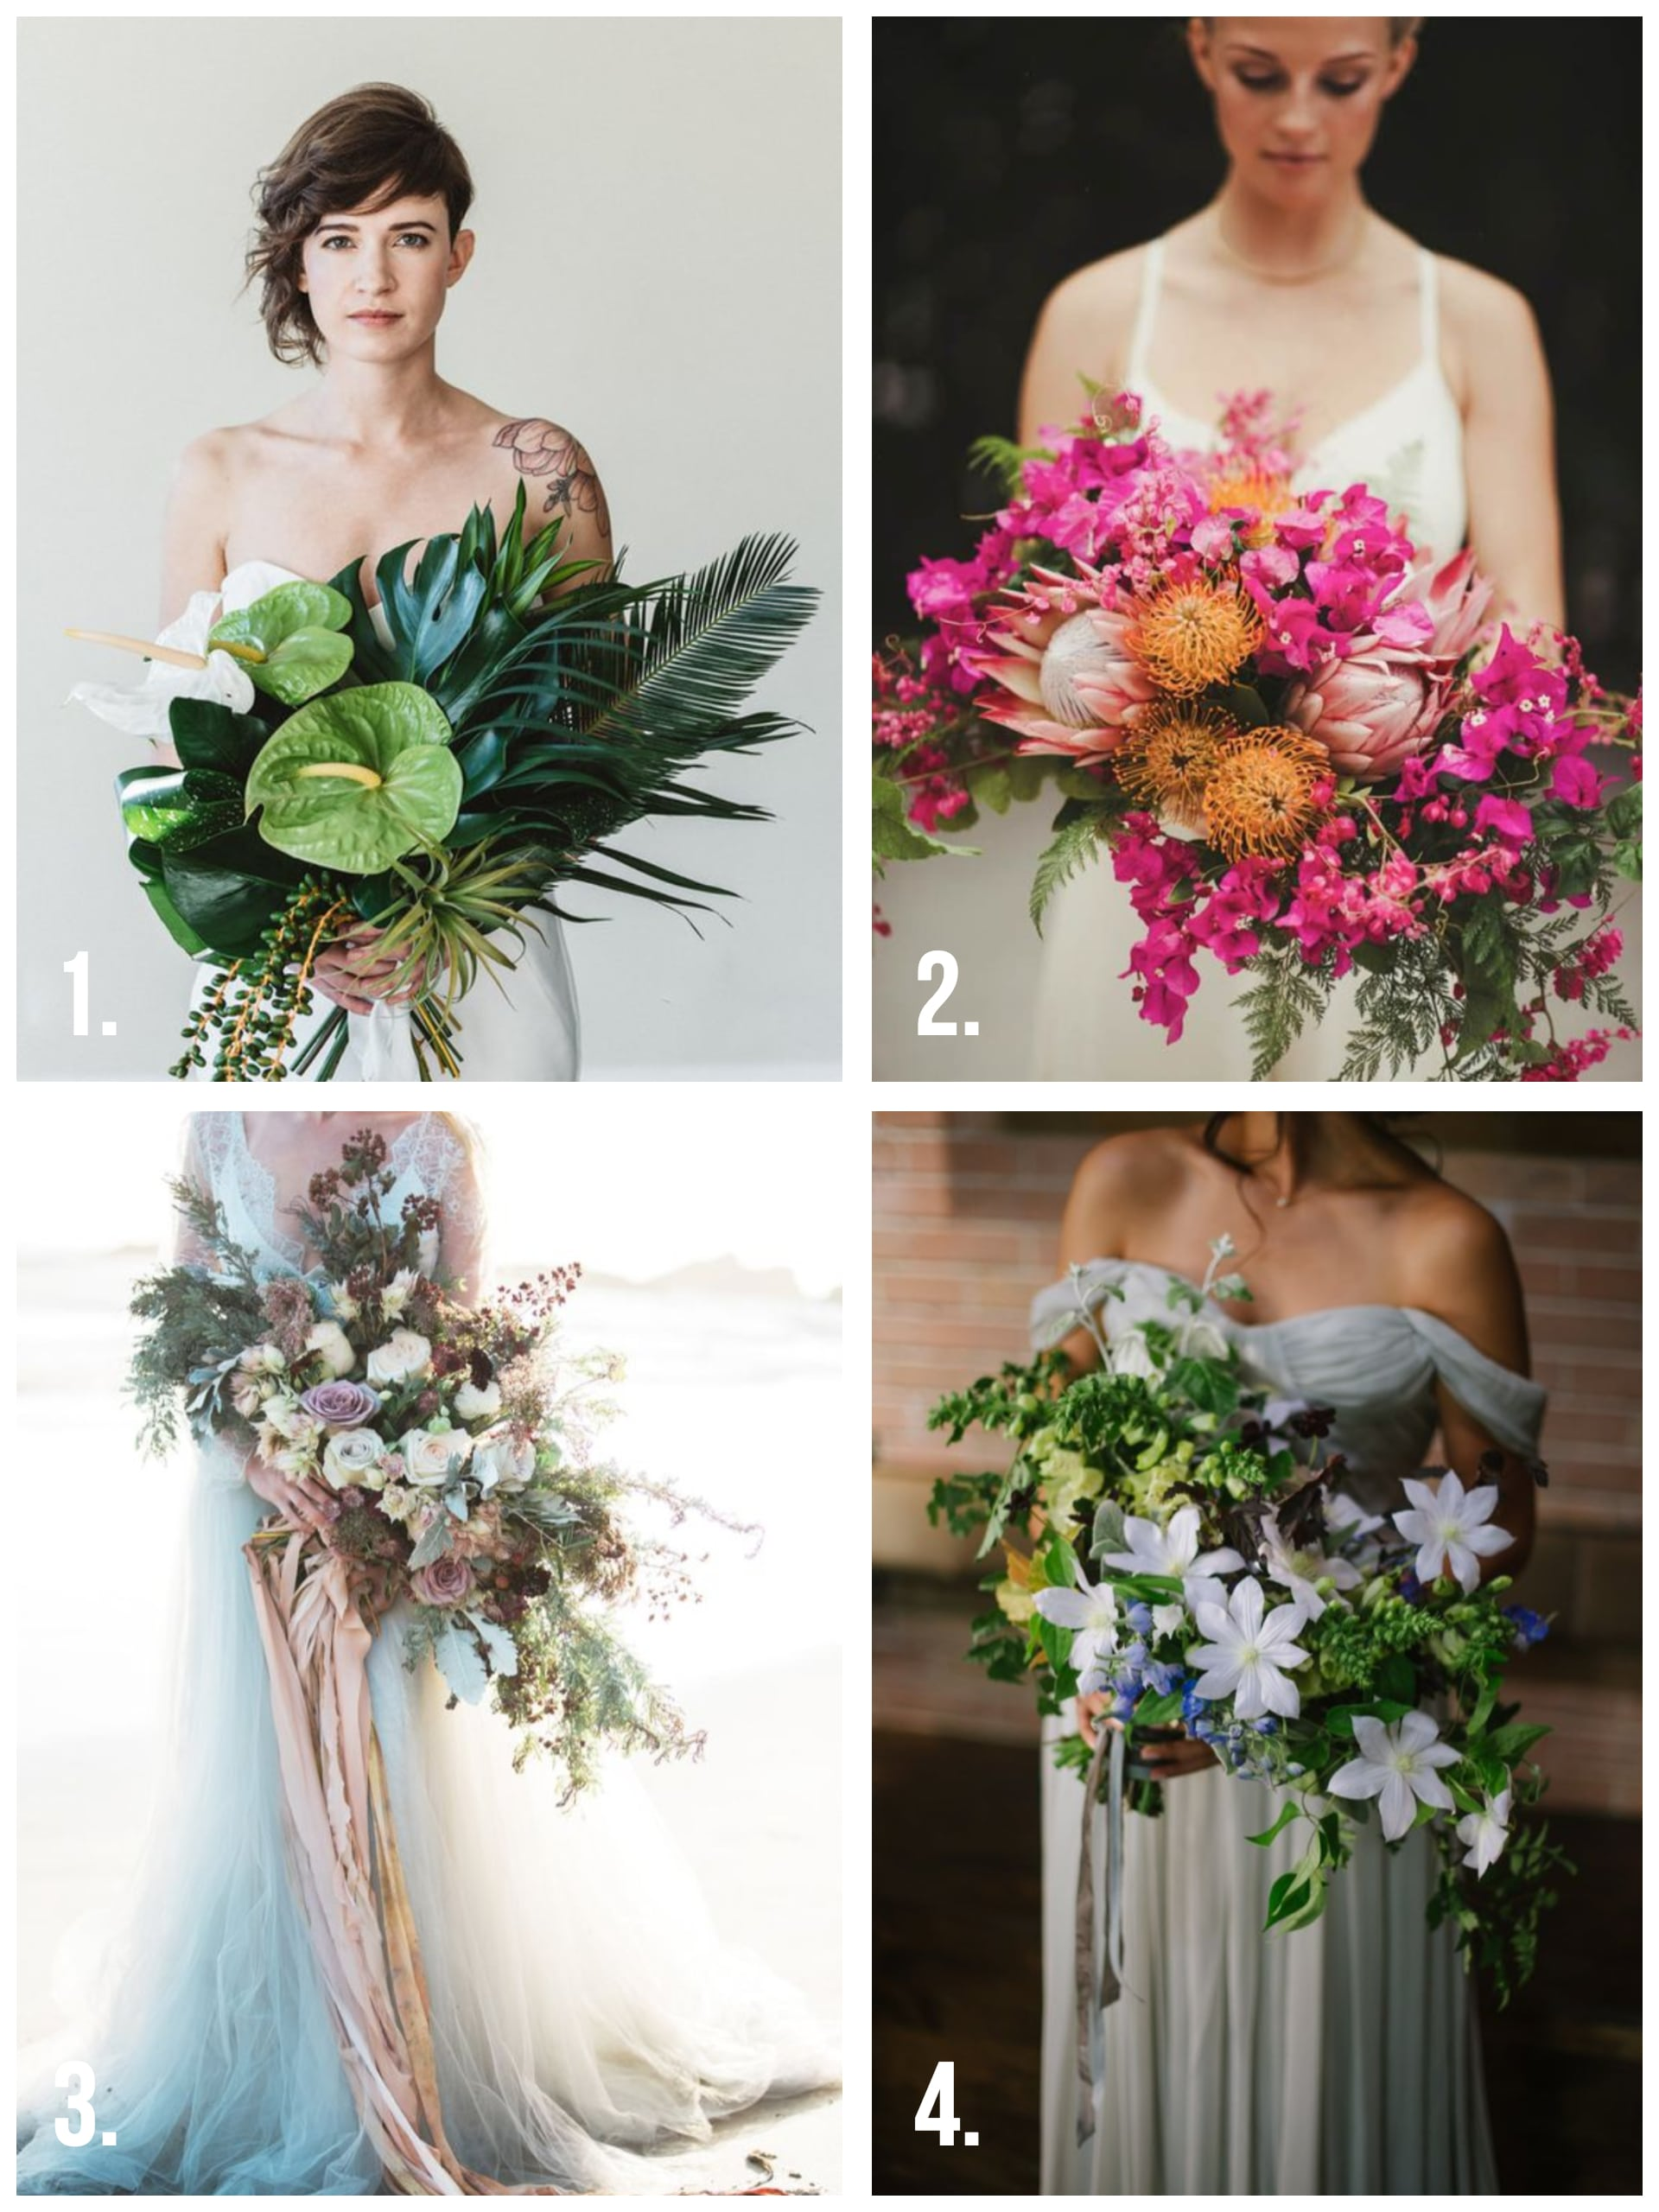 Four panel image of asymmetrical bouquets